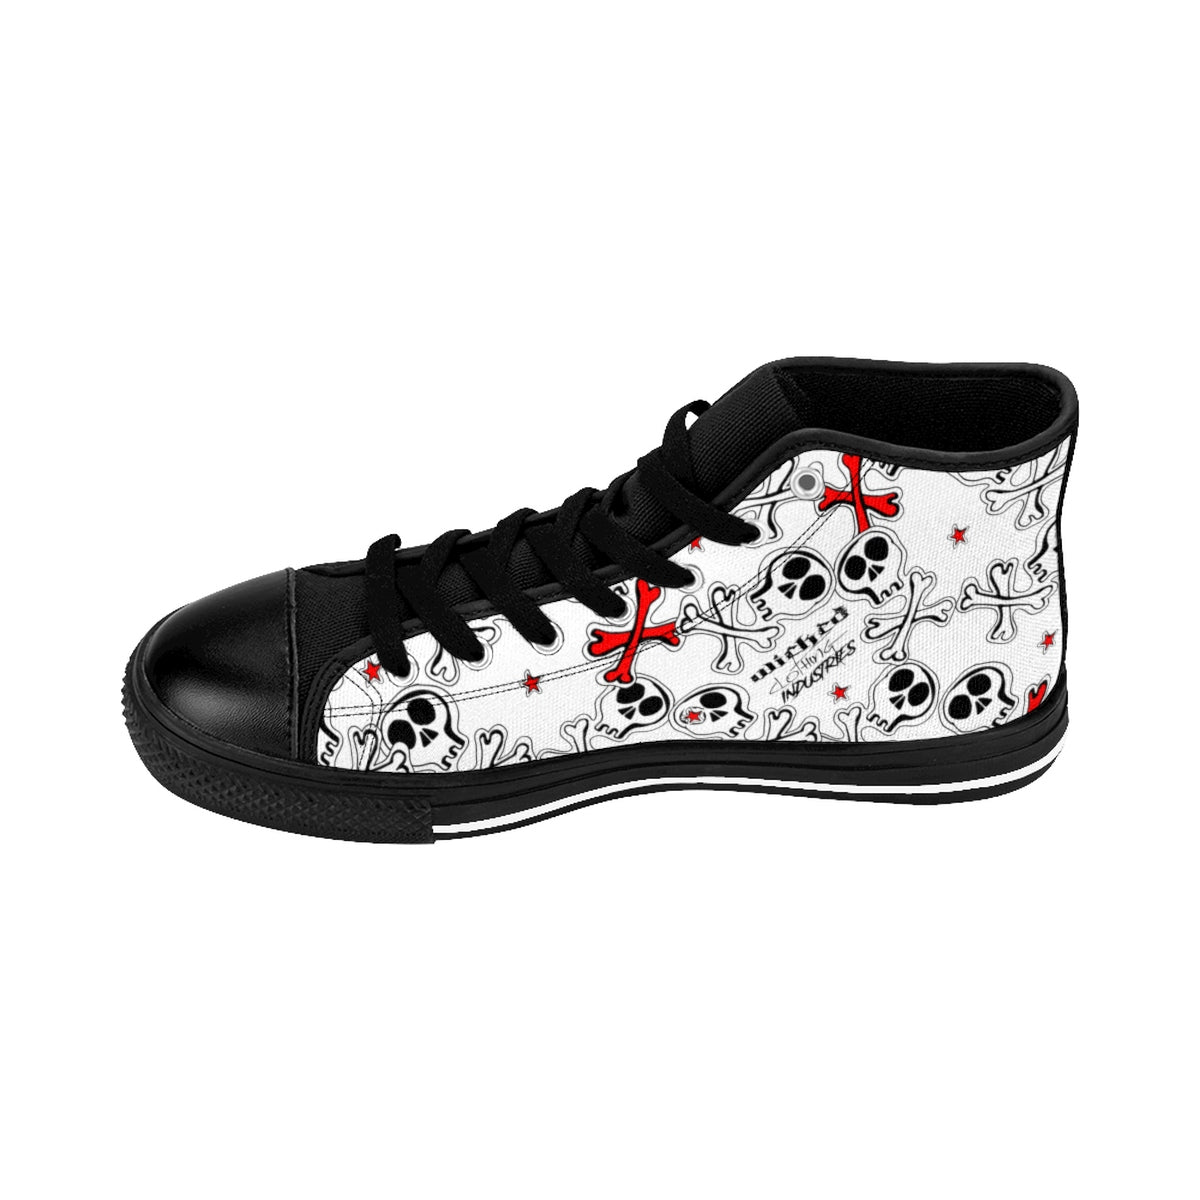 Men's Cartoon Skulls High-top Sneakers